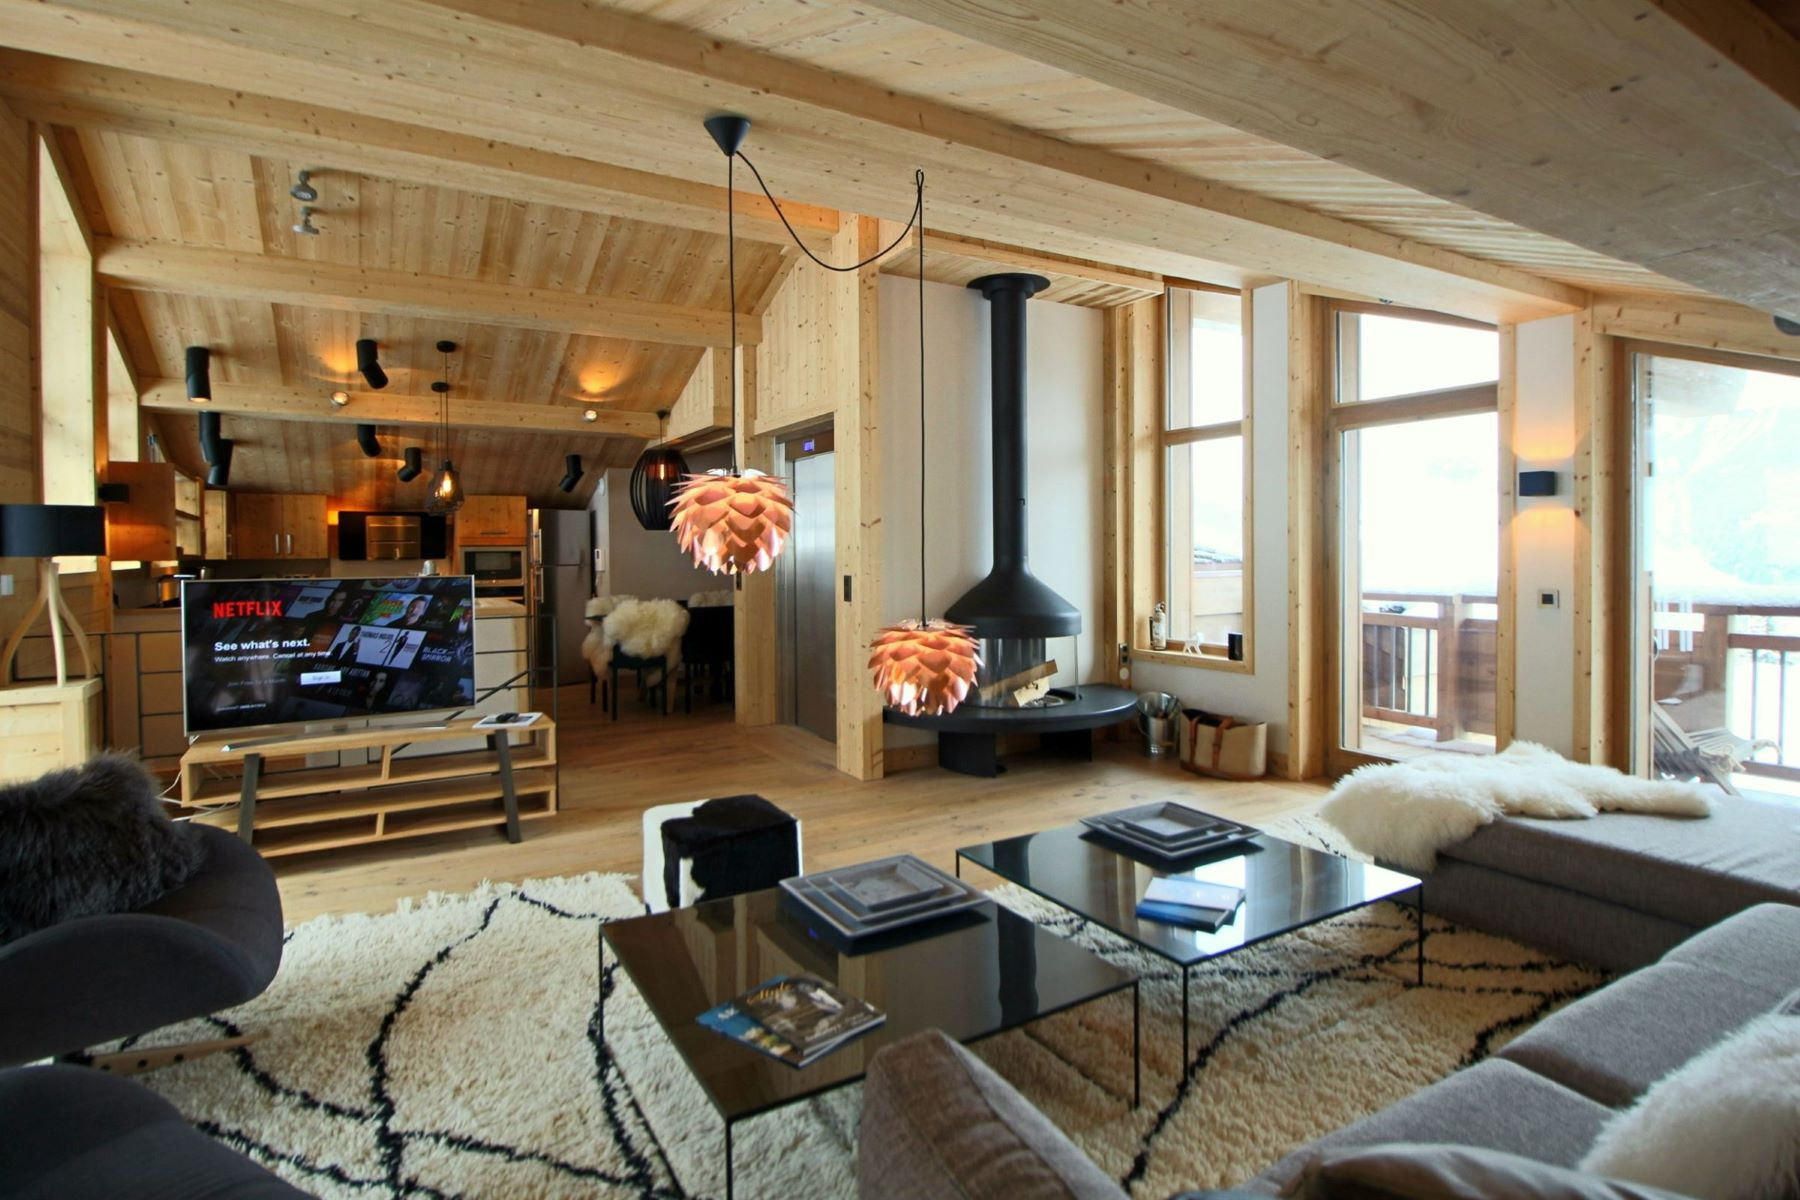 Moradia para Venda às Chalet Eiger Courchevel Village Courchevel, Rhone-Alpes, 73120 França